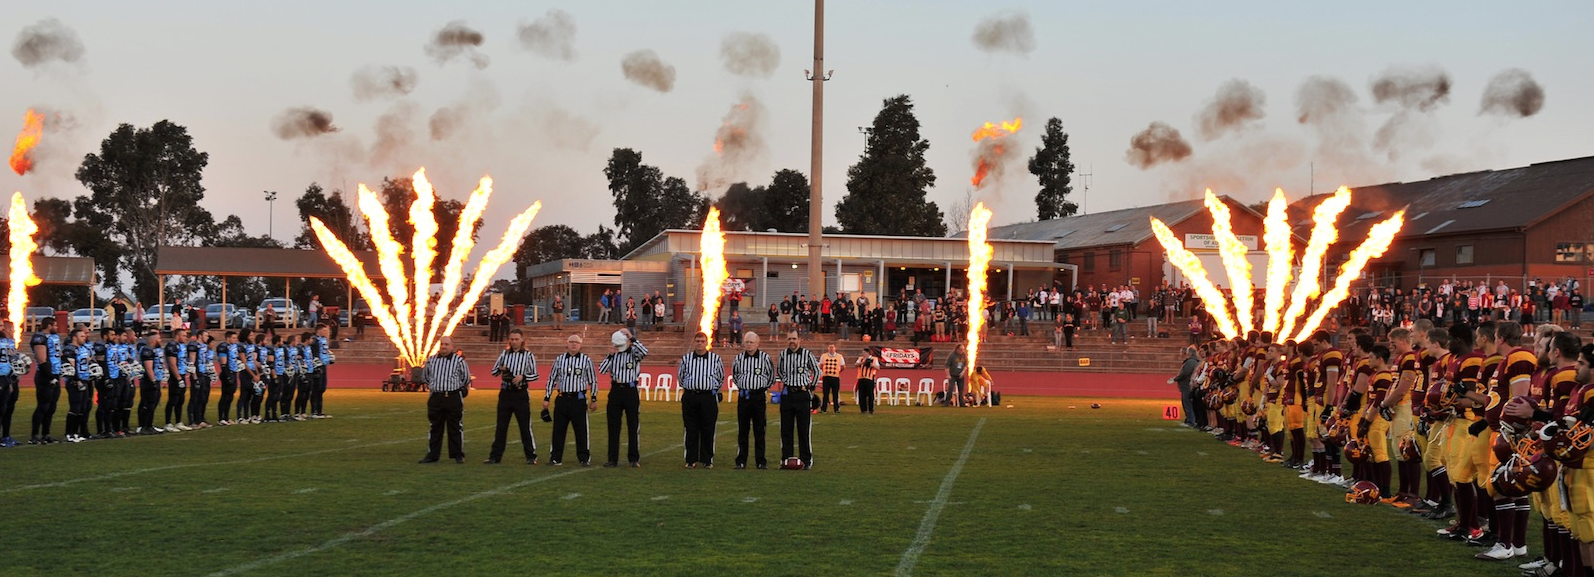 Warriors & Buccaneers line up for the National Anthem (Photo courtesy of barendphotos.com)